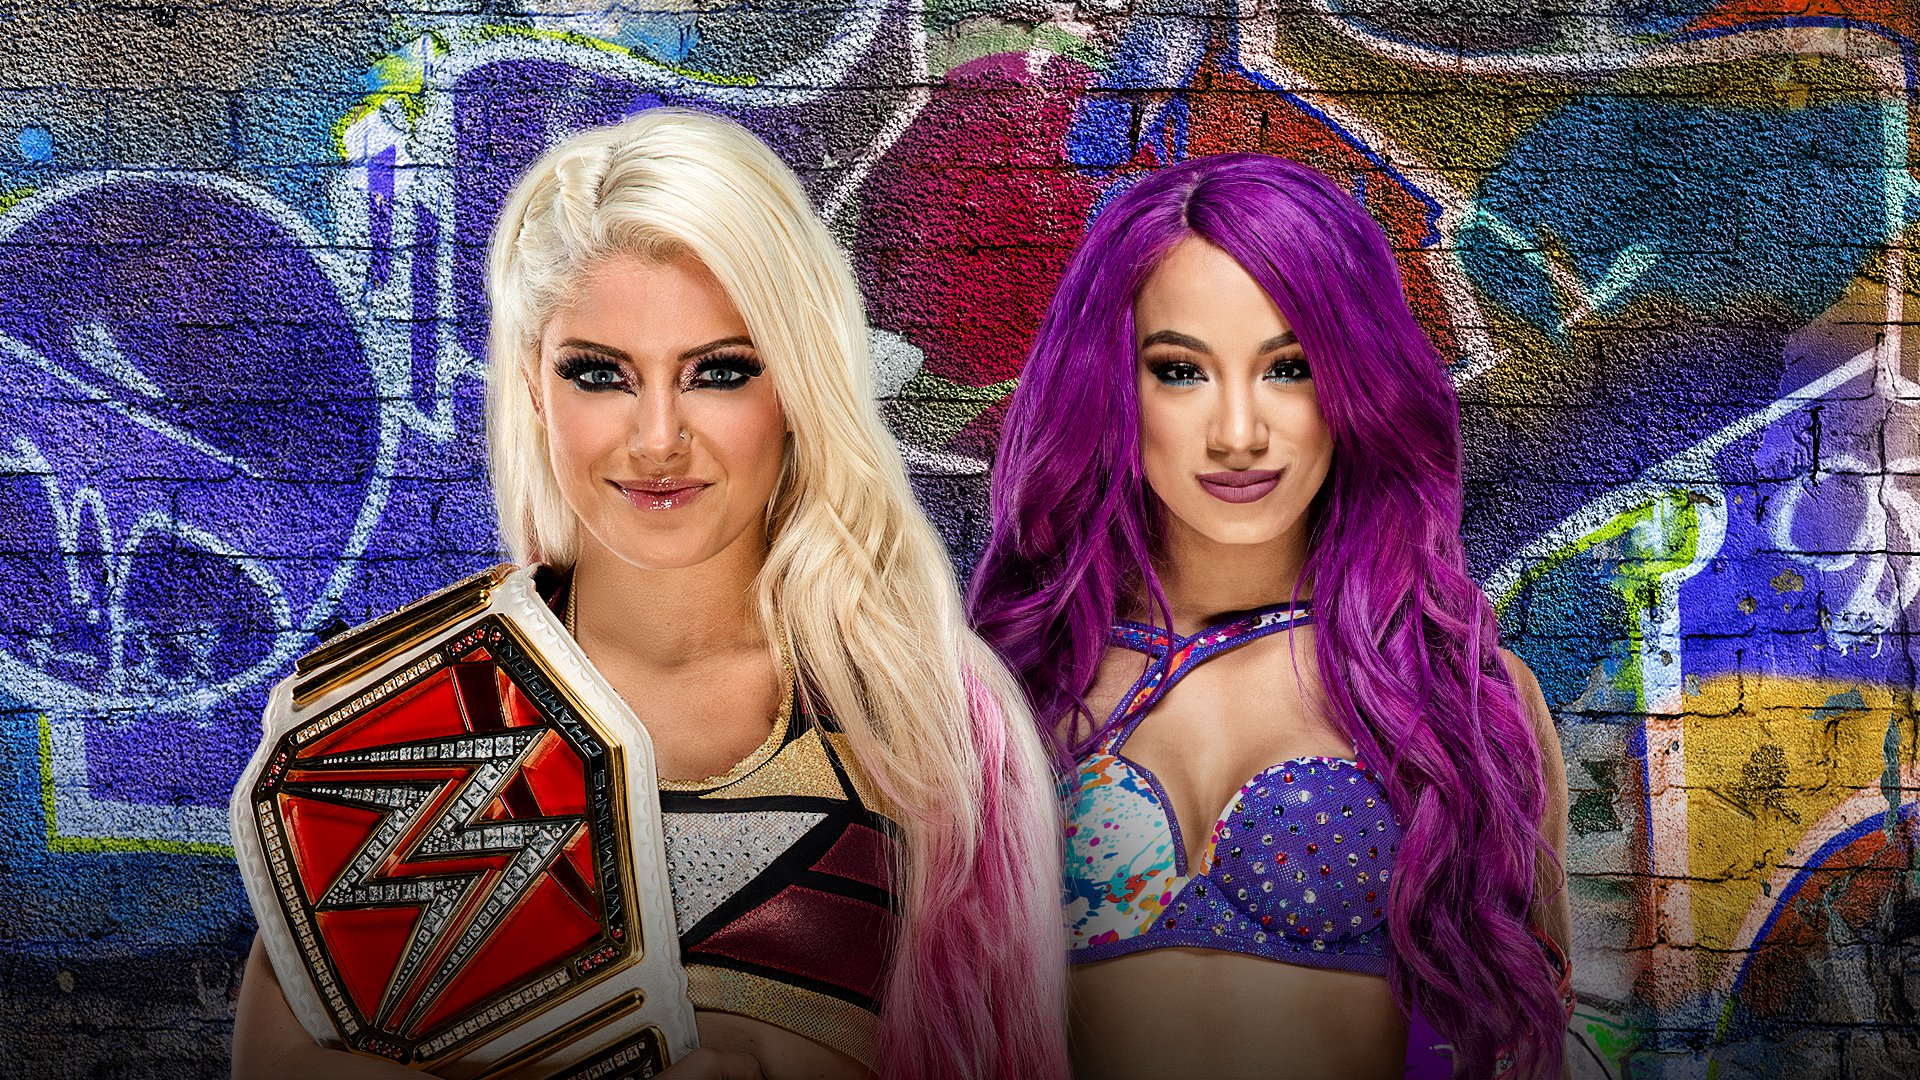 WWE SummerSlam 2017: Alexa Bliss vs. Sasha Banks